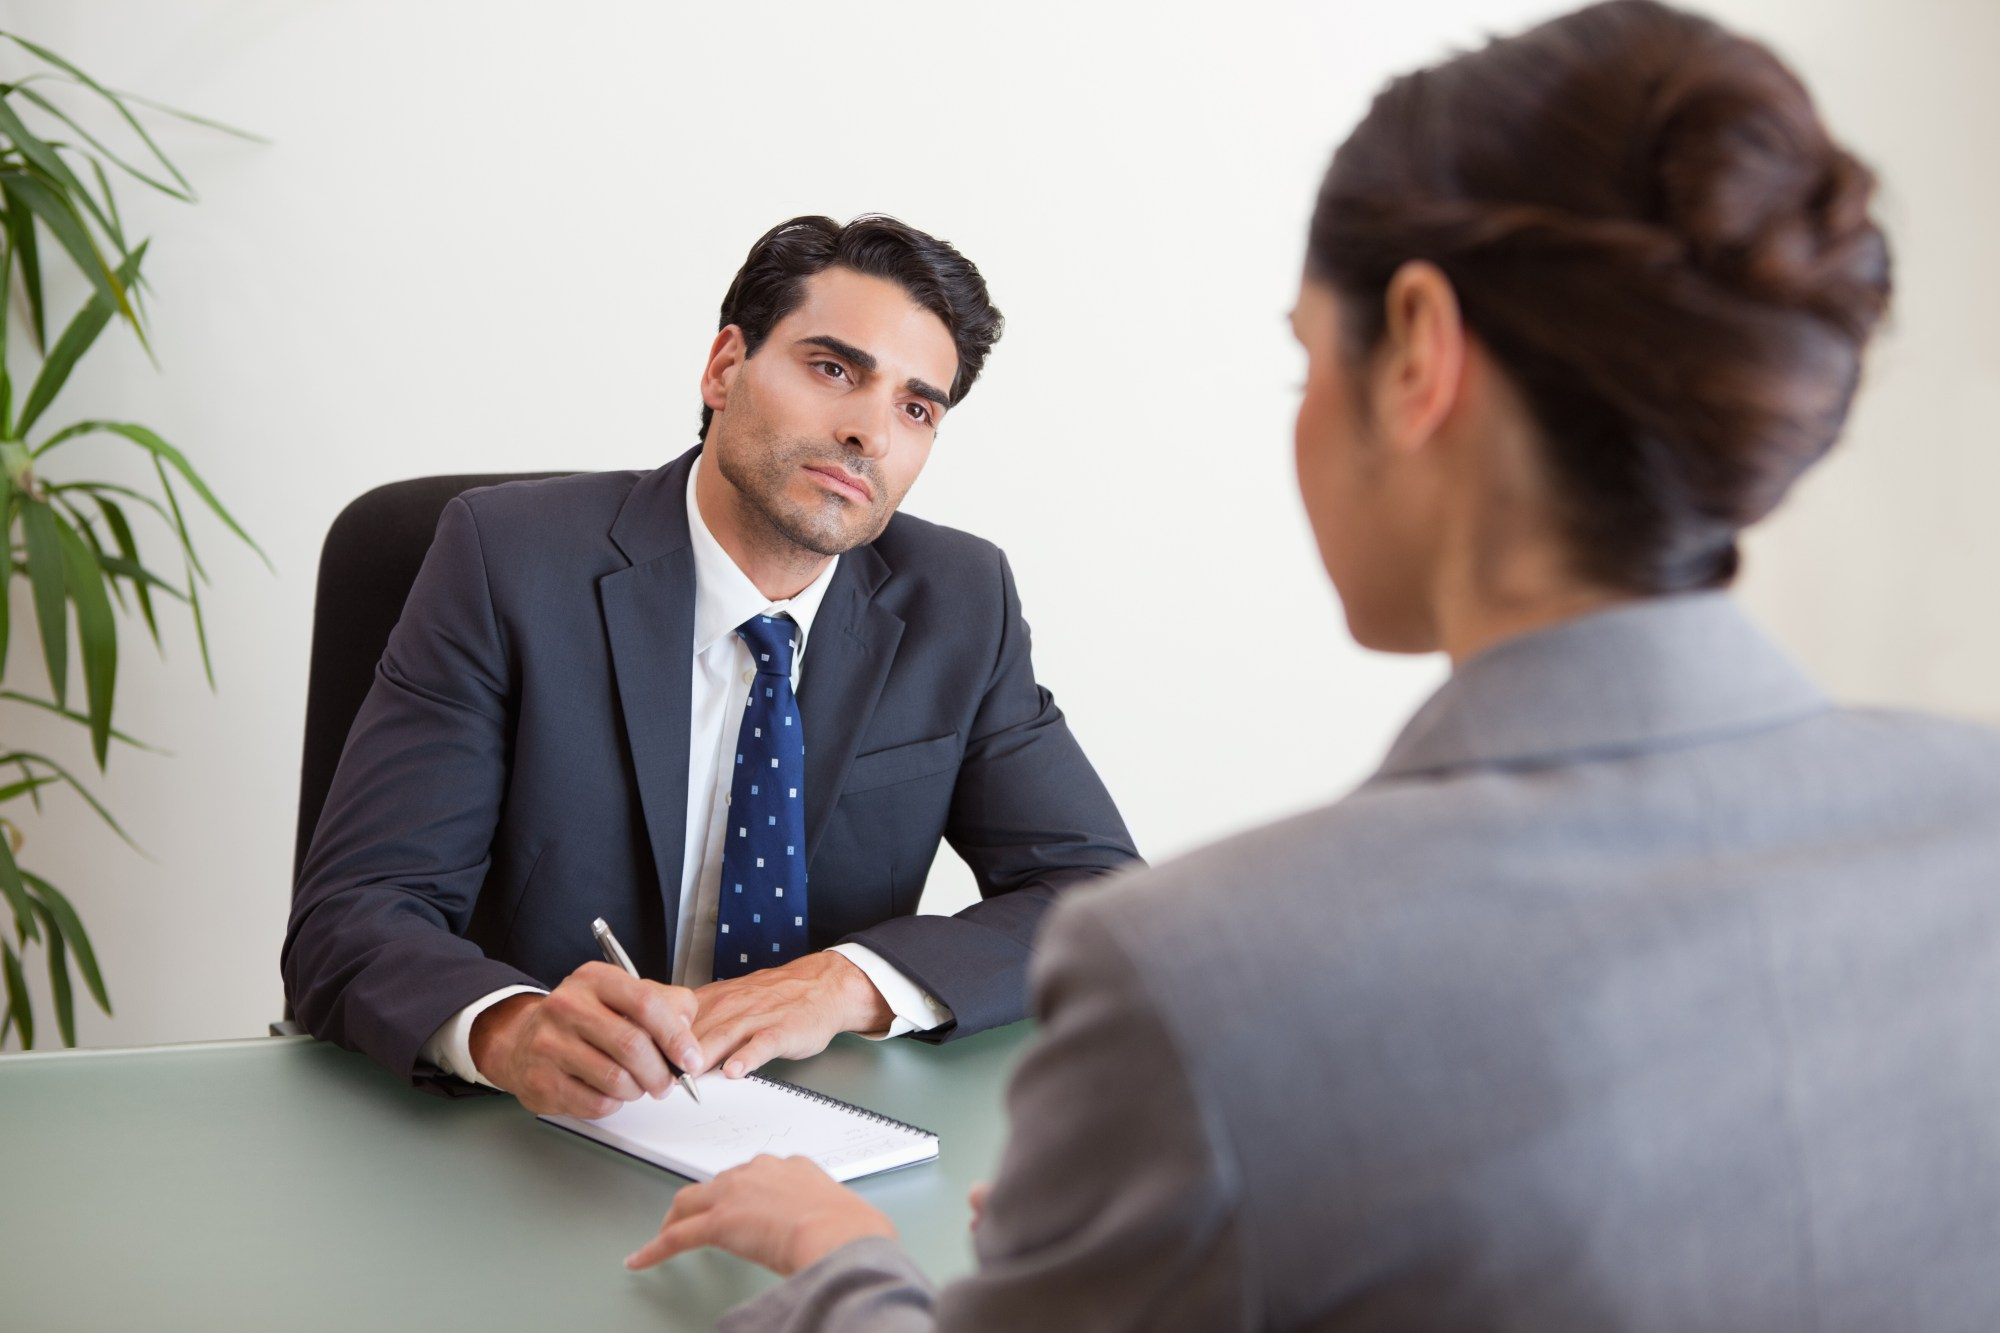 hight resolution of how to proceed when you say the wrong thing in an interview